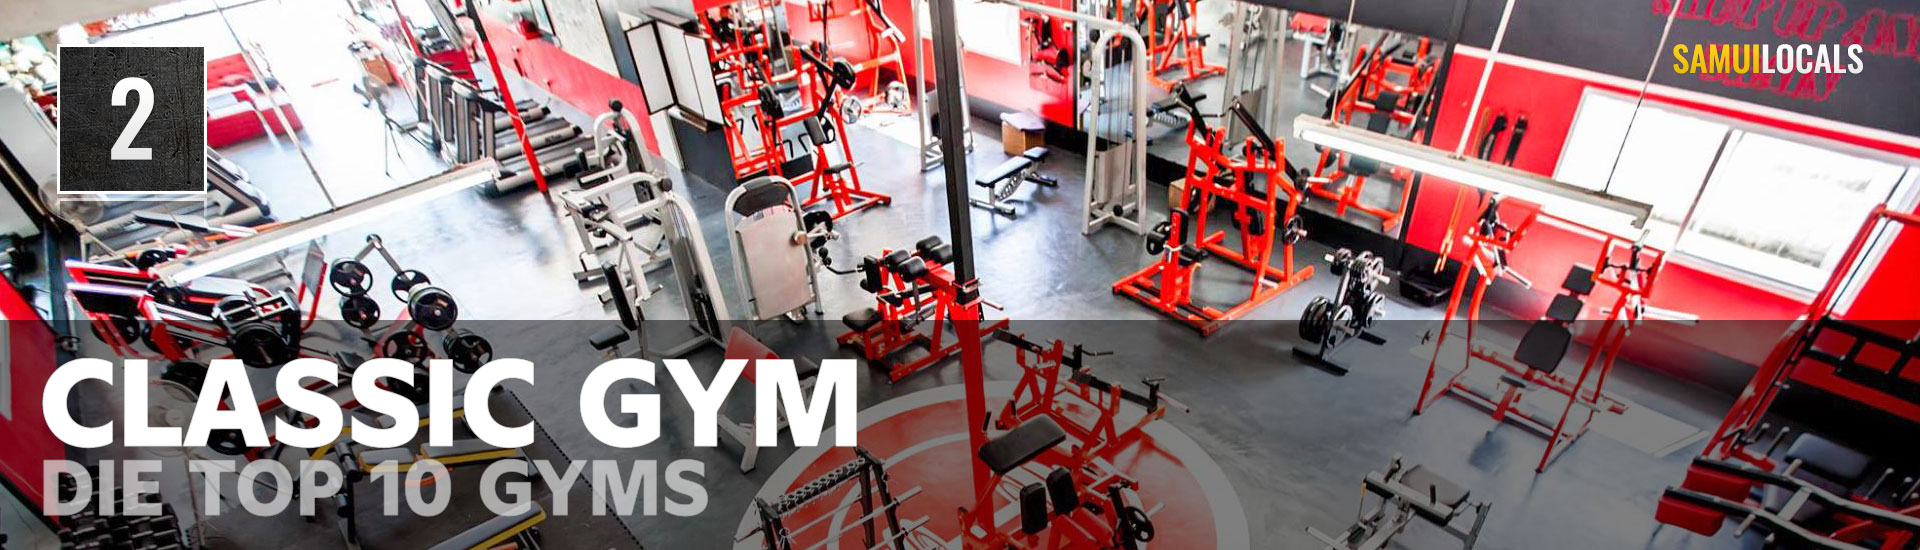 Top_10_gyms_classic_gym